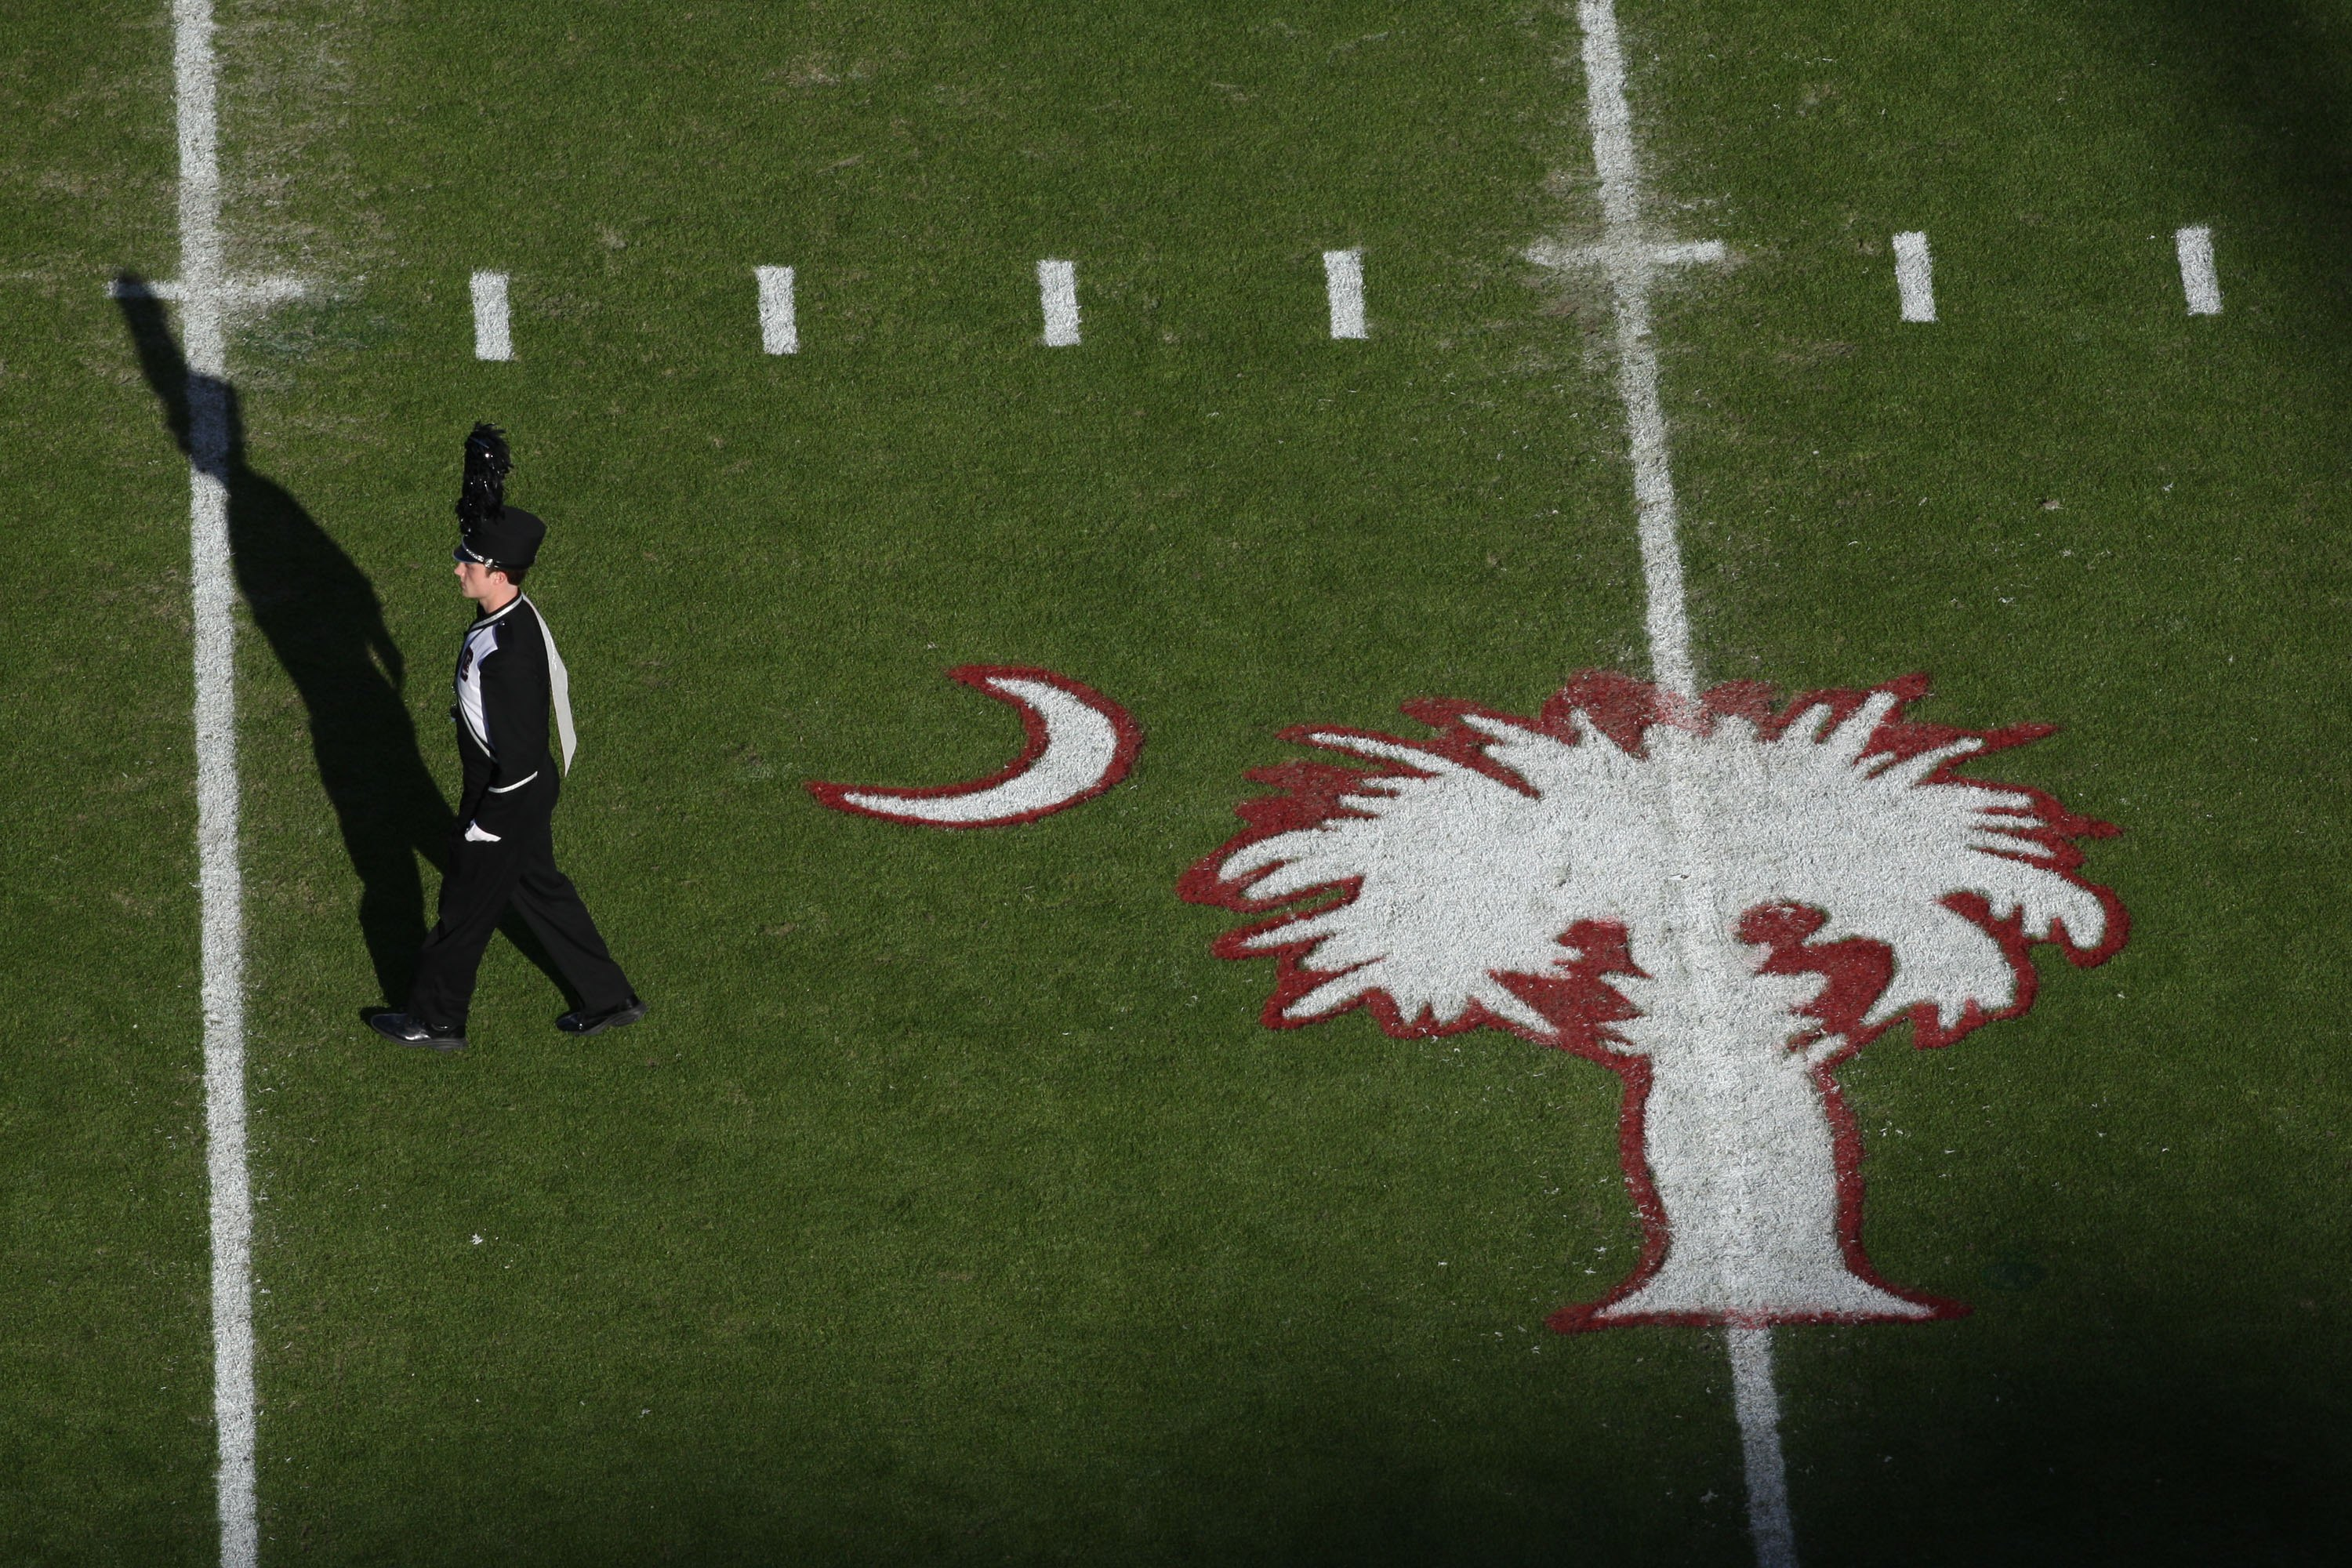 COLUMBIA, SC - NOVEMBER 14:  Overhead view of South Carolina Gamecocks marching band member and state logo during the game against the Florida Gators at Williams-Brice Stadium on November 14, 2009 in Columbia, South Carolina. (Photo by Streeter Lecka/Gett